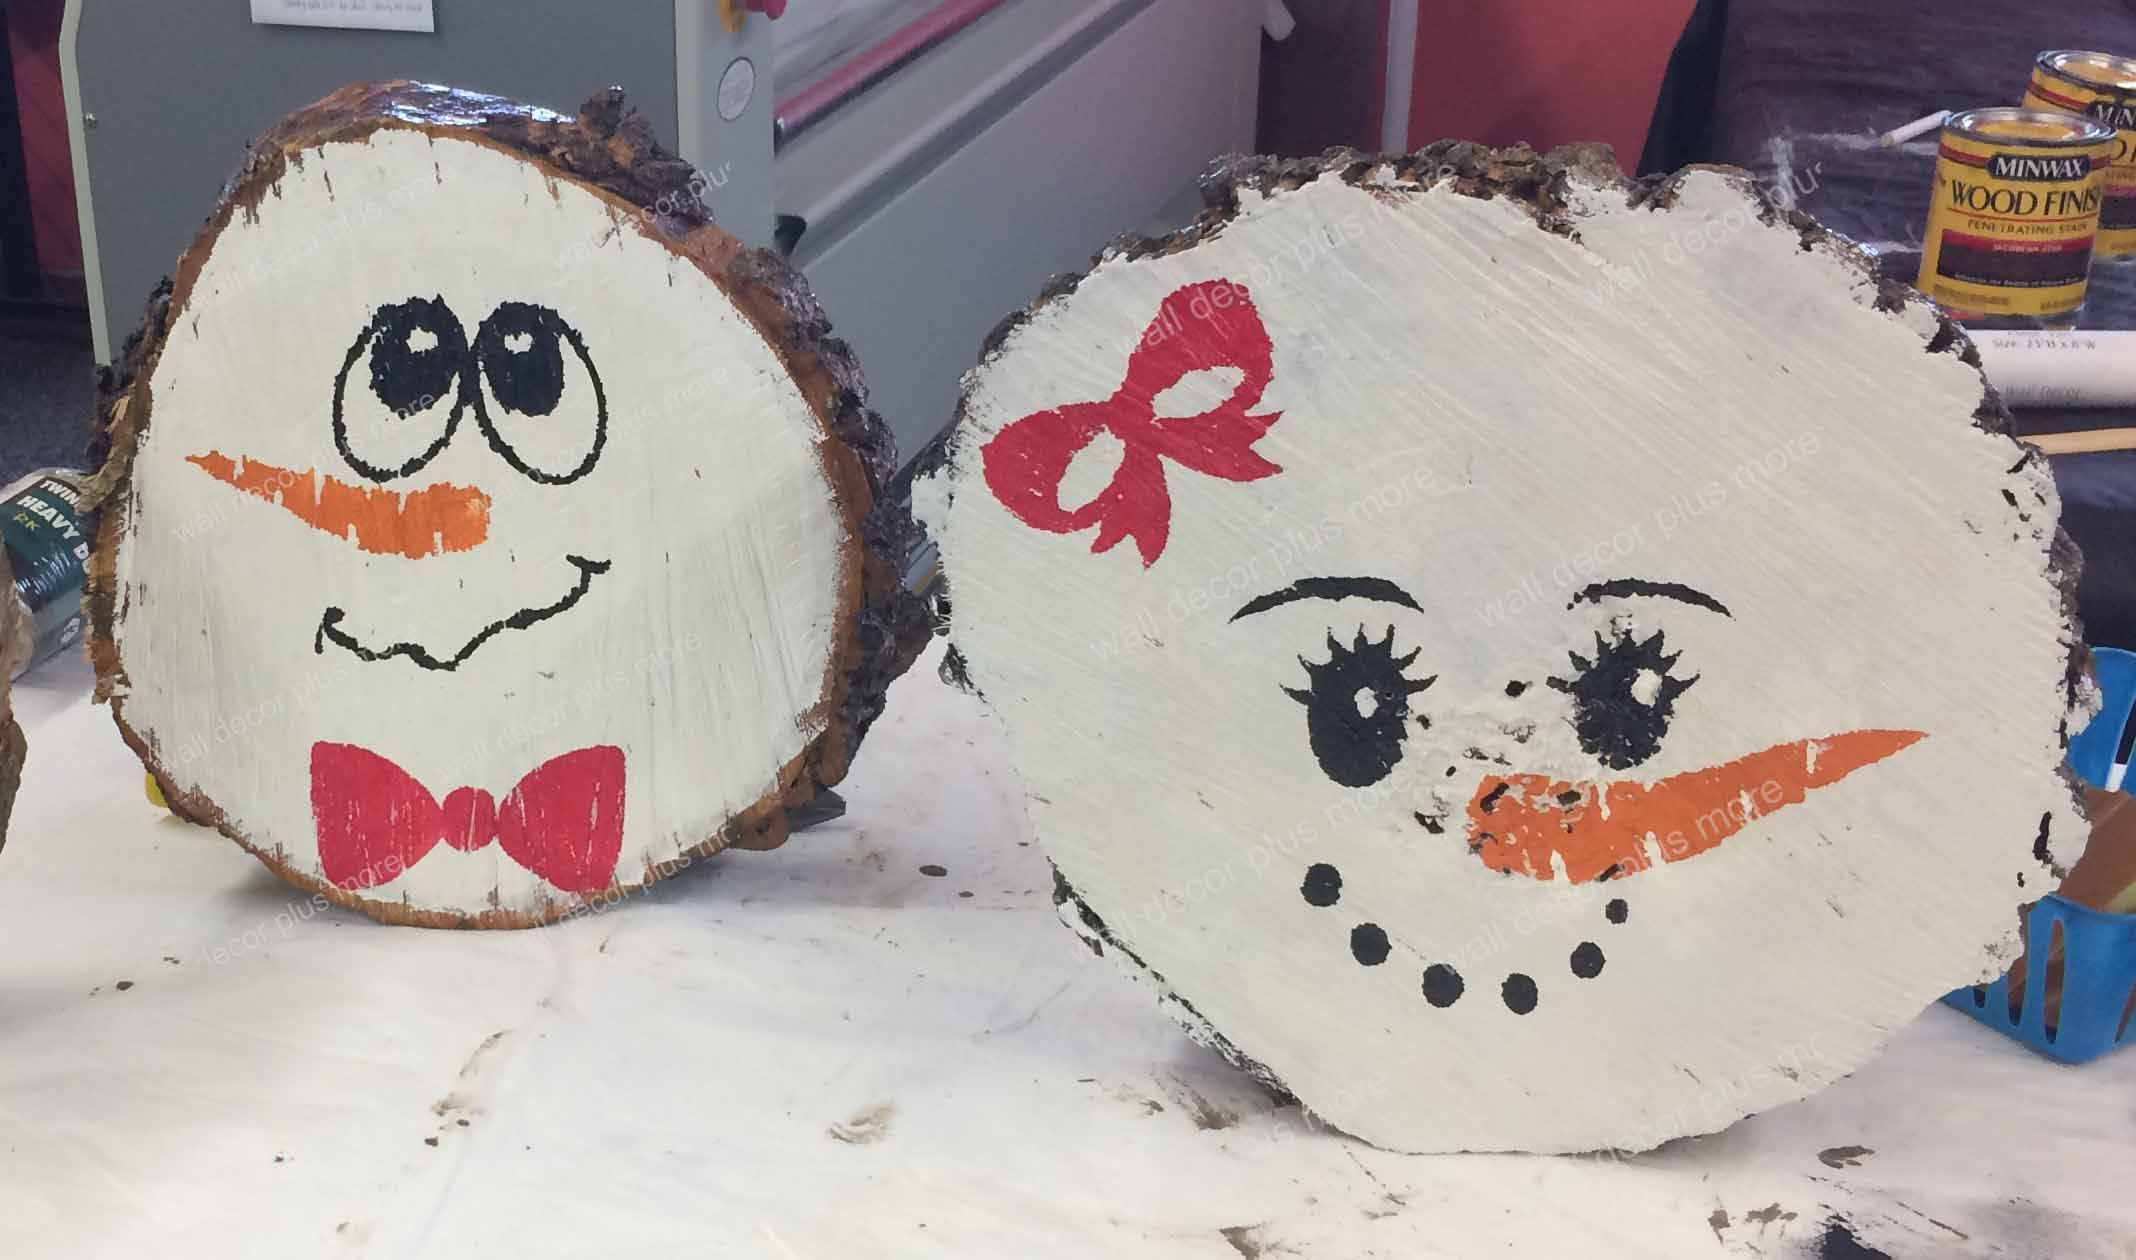 Snowman Face Stencil Sticker For Winter Decoration Painting Diy Wood Snowman Faces Christmas Craft Show Christmas Diy Wood